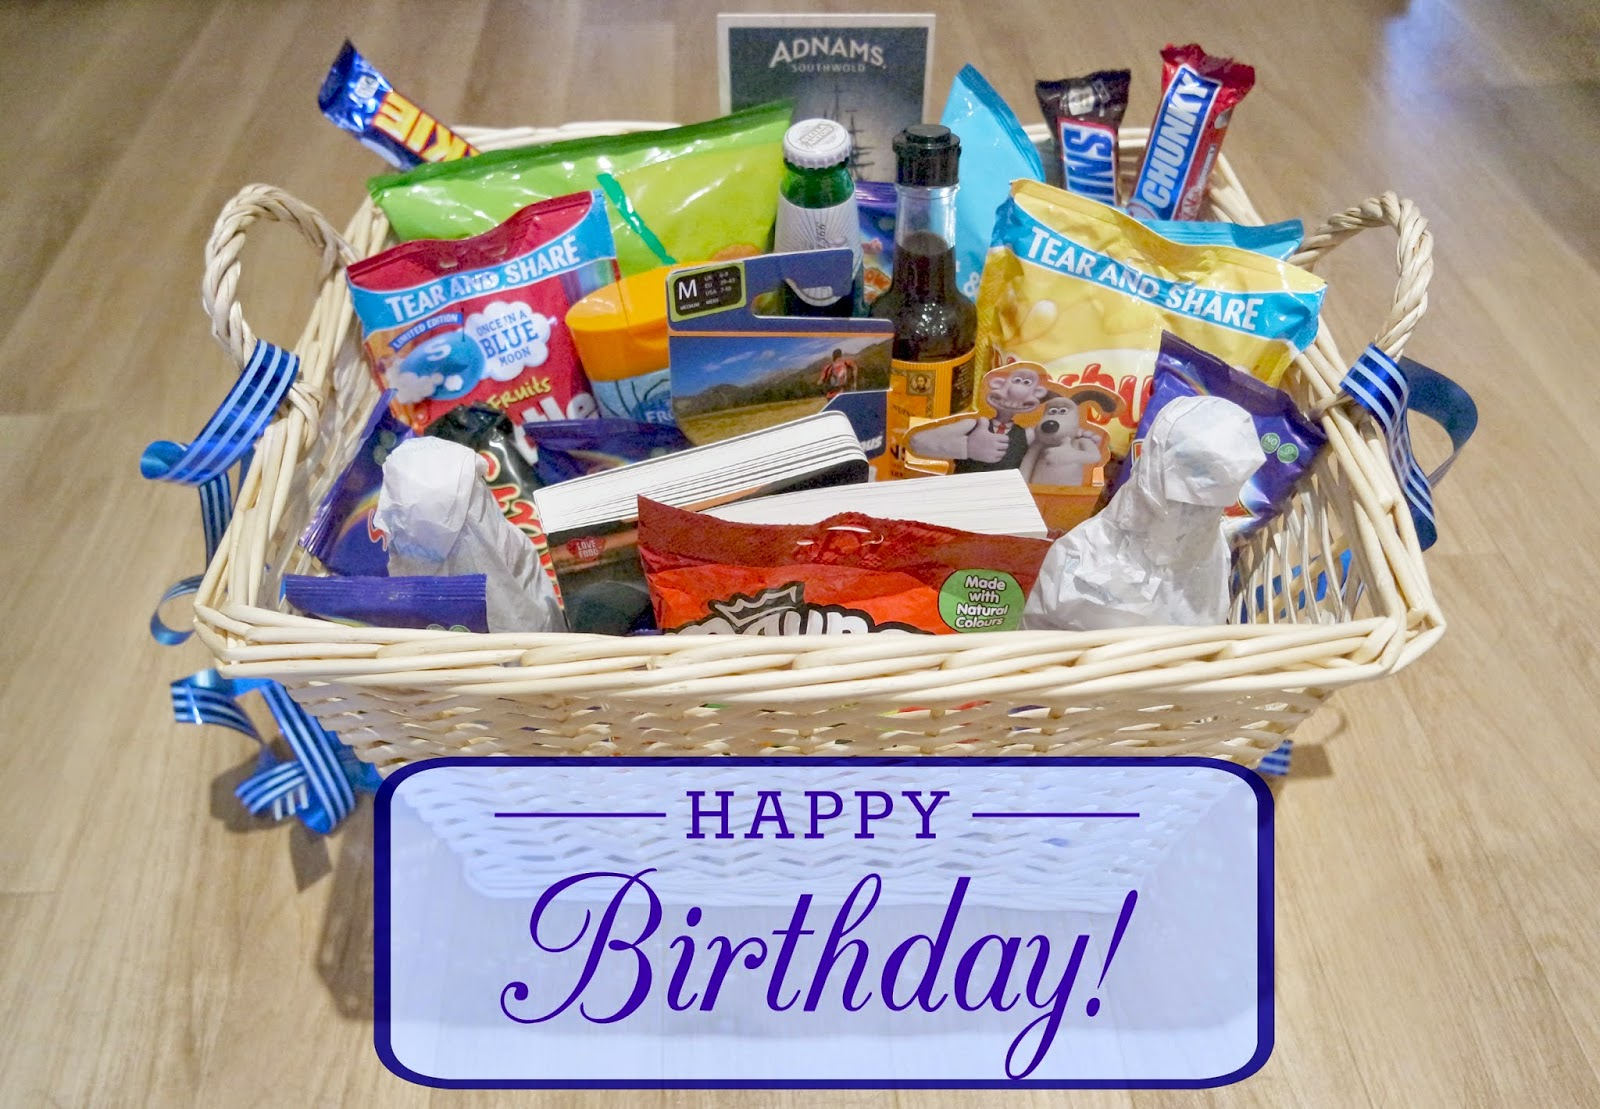 My Dads 50th Birthday Hamper